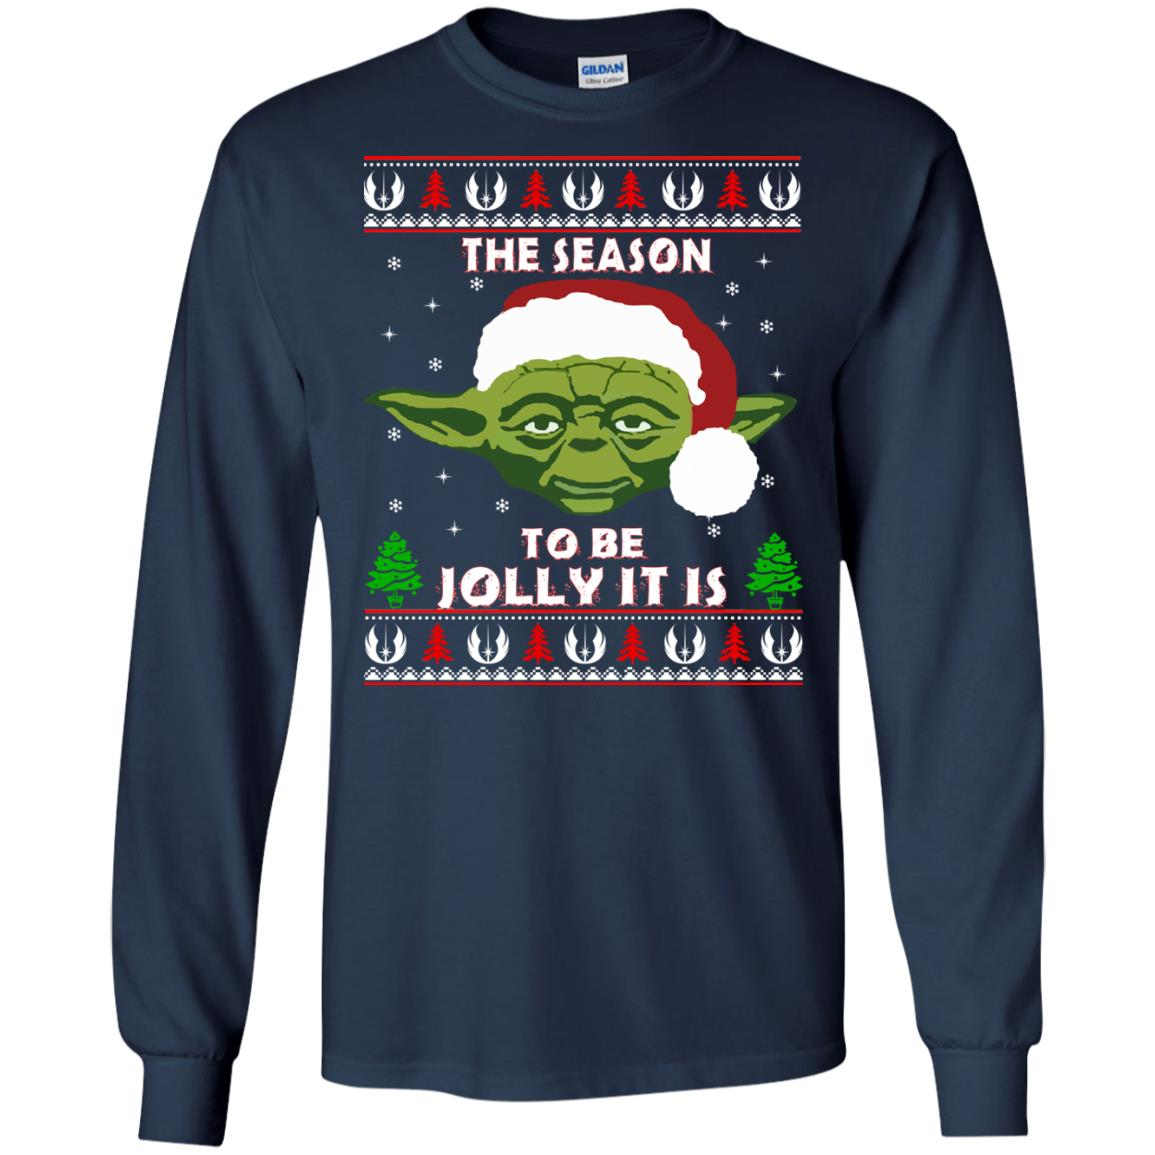 image 1701 - Star Wars Yoda: Tis the season to be jolly it is Christmas sweater, hoodie